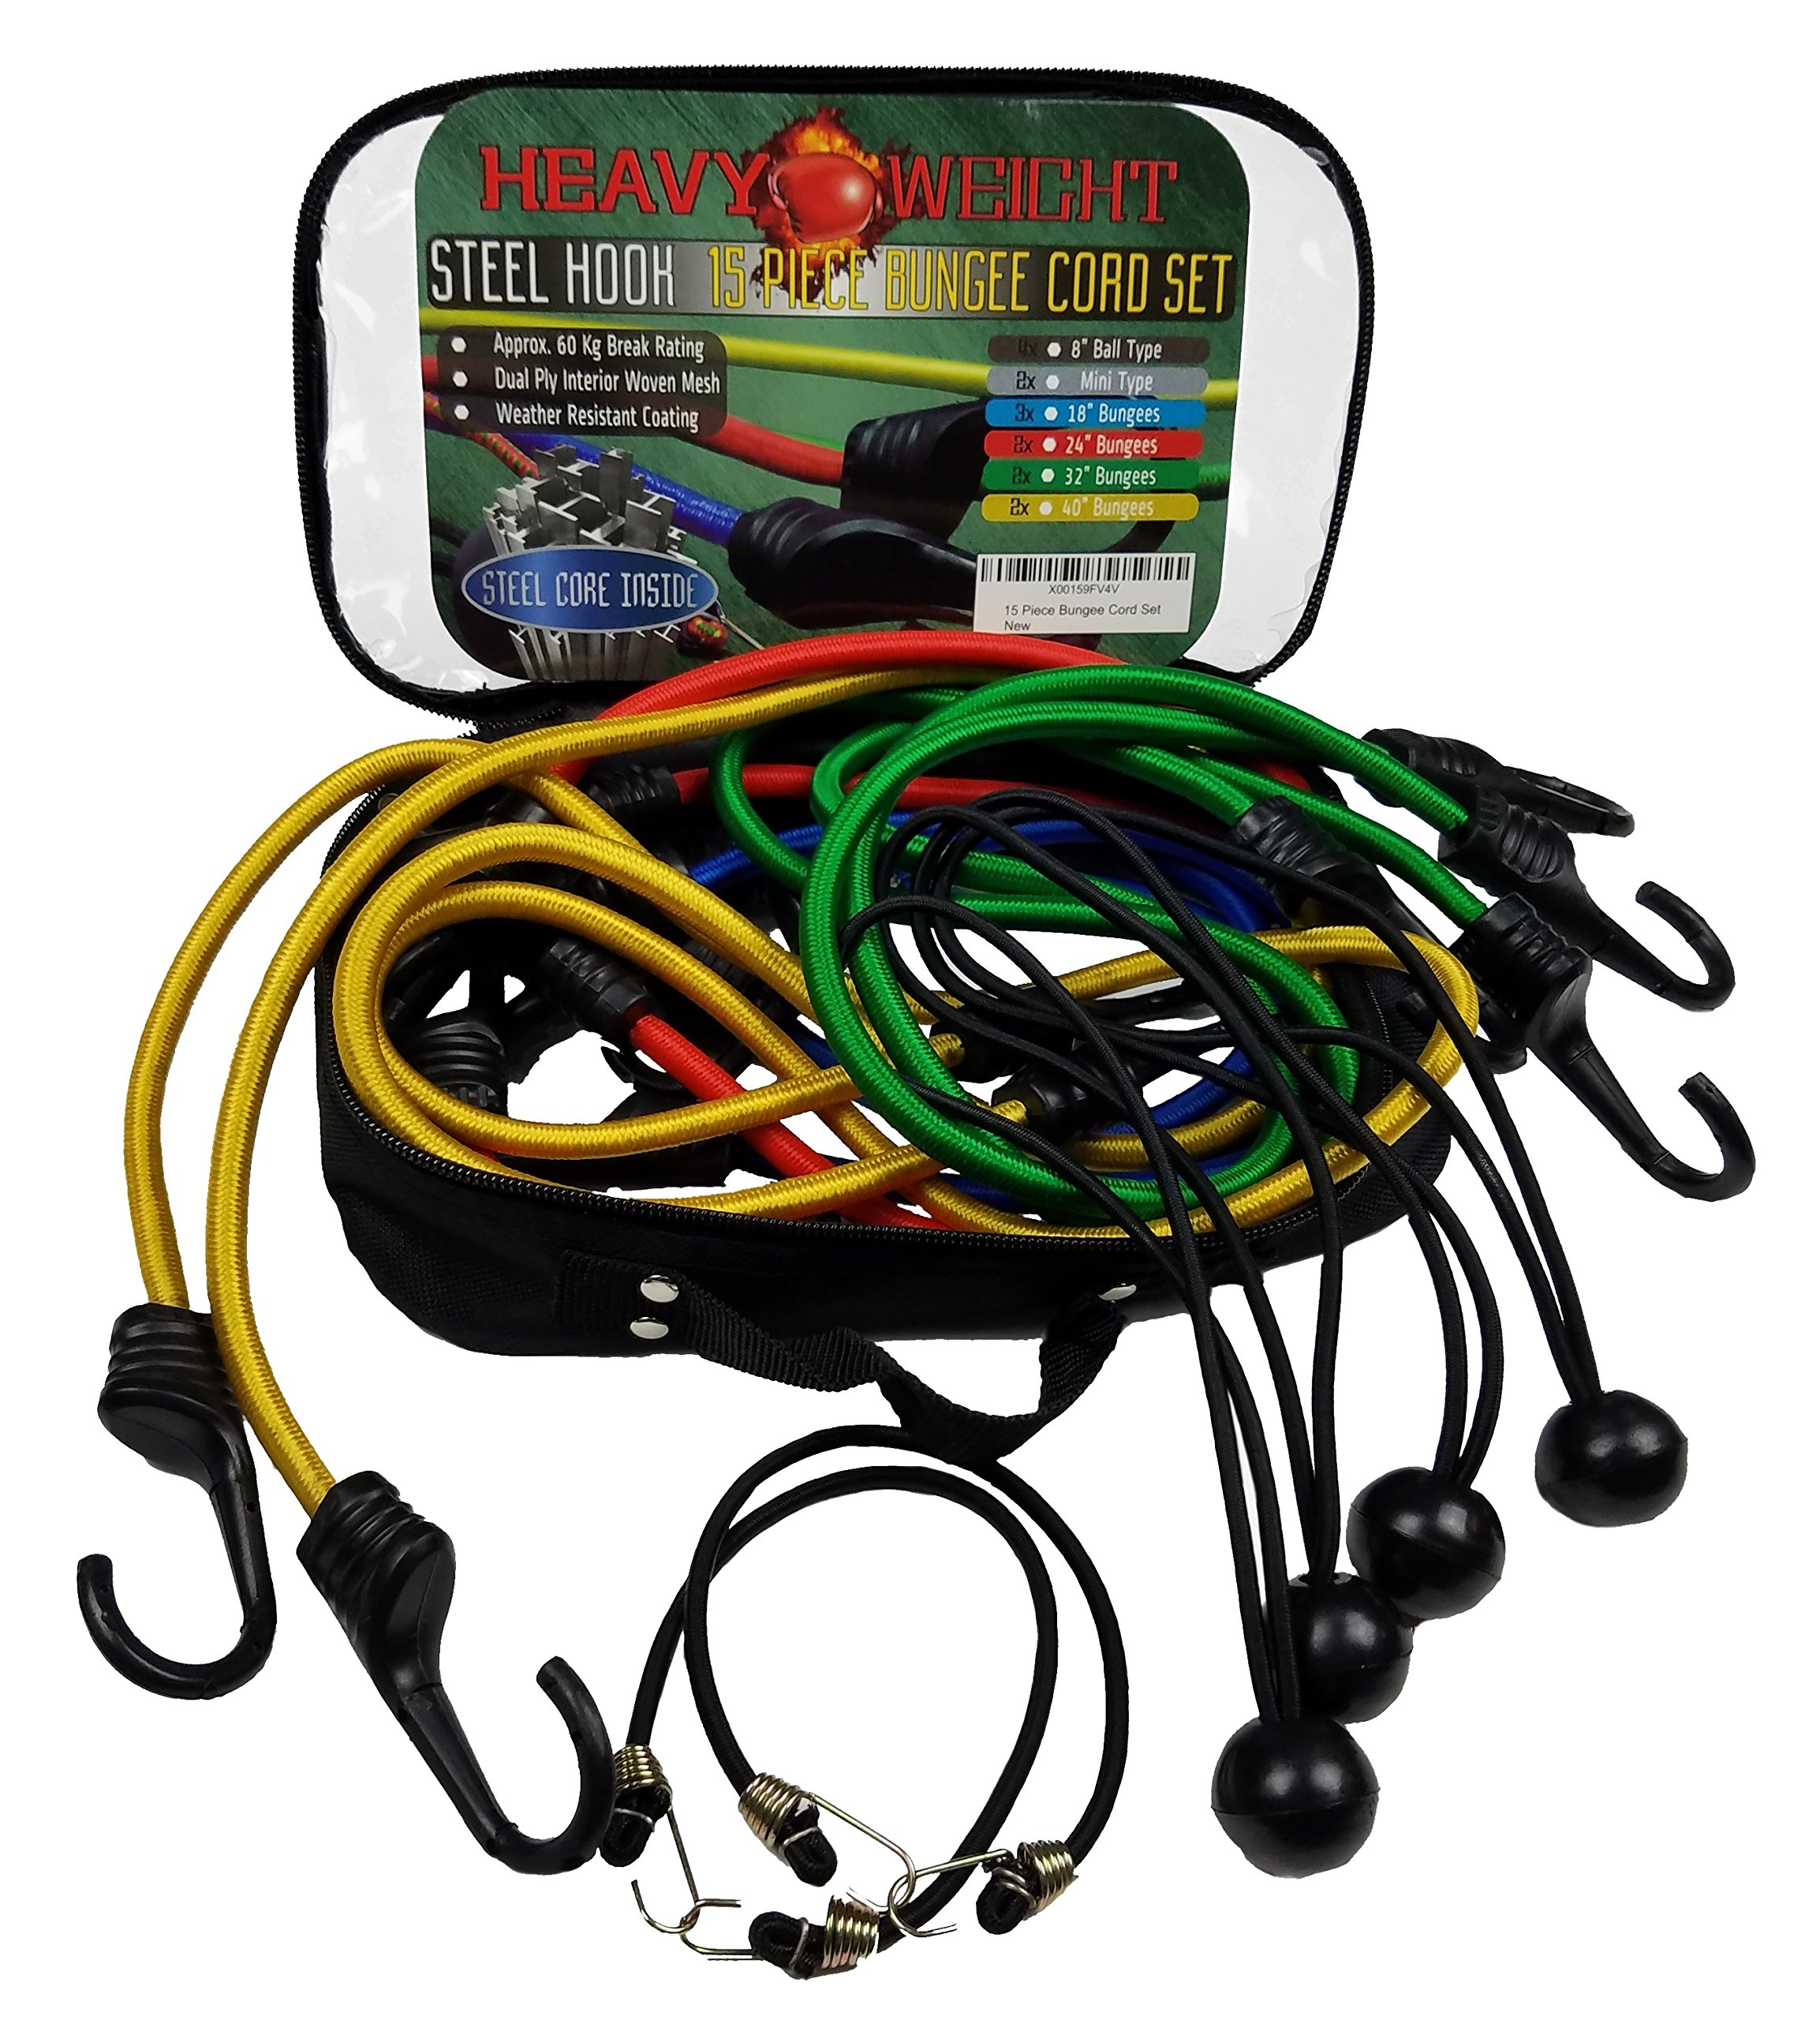 15 Piece Bungee Cord Set in Weatherproof Bag - Weather Resistant for Cargo, Camping, RVs, Trunks, Luggage Racks - Elastic Shock Cord, Ball Bungees, Tarp Tie Downs